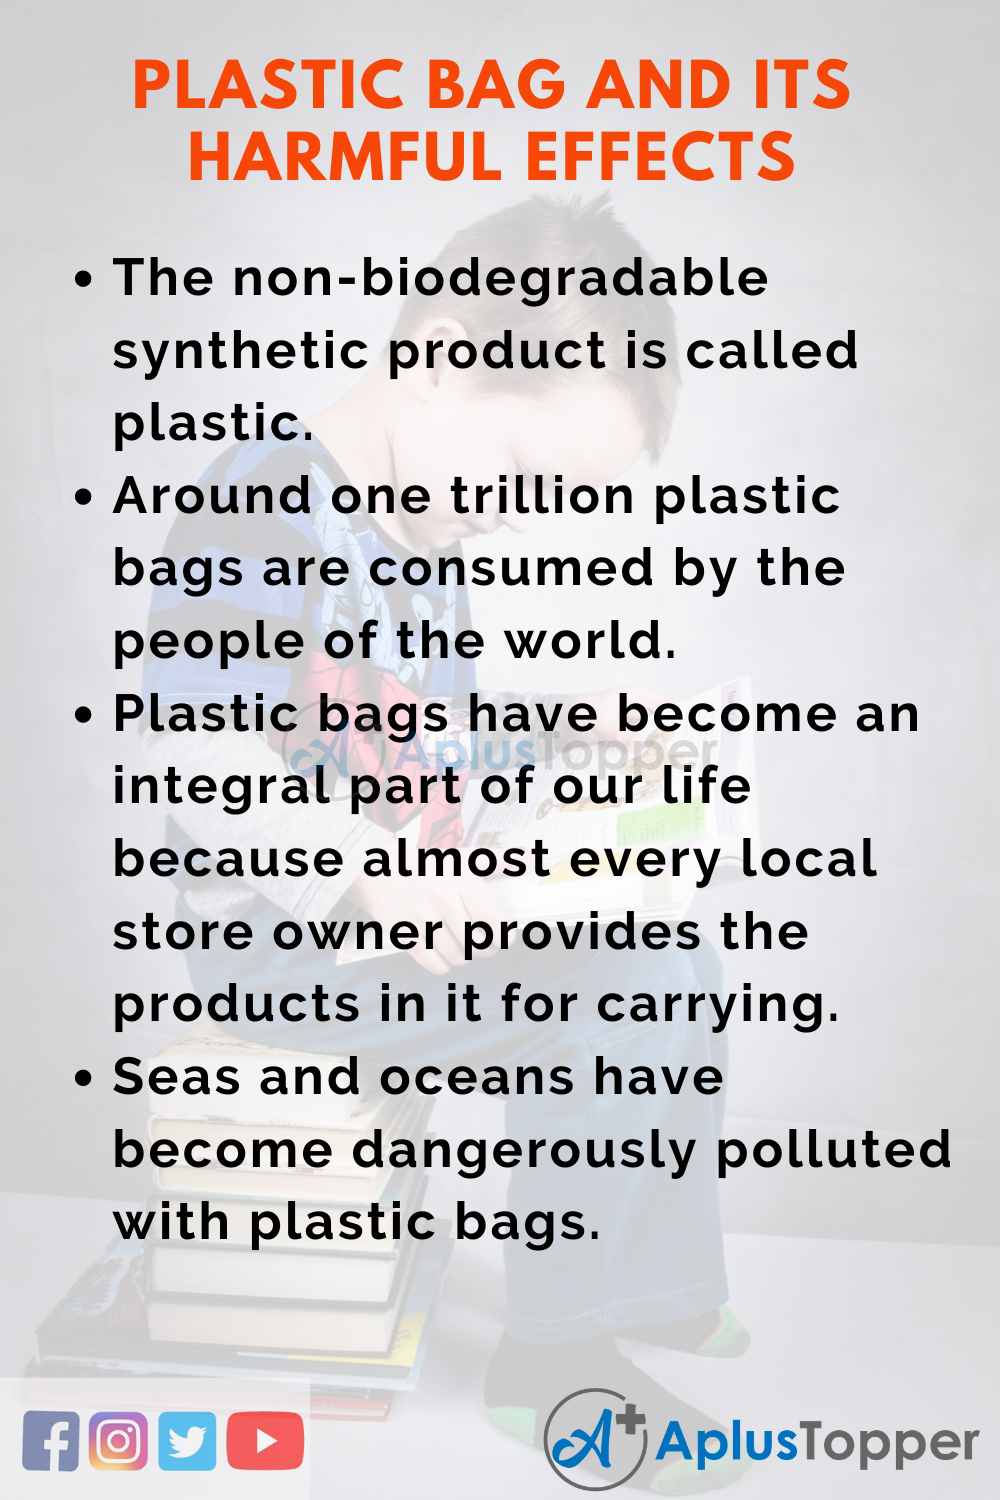 10 Lines on Plastic Bag And Its Harmful Effects for Kids